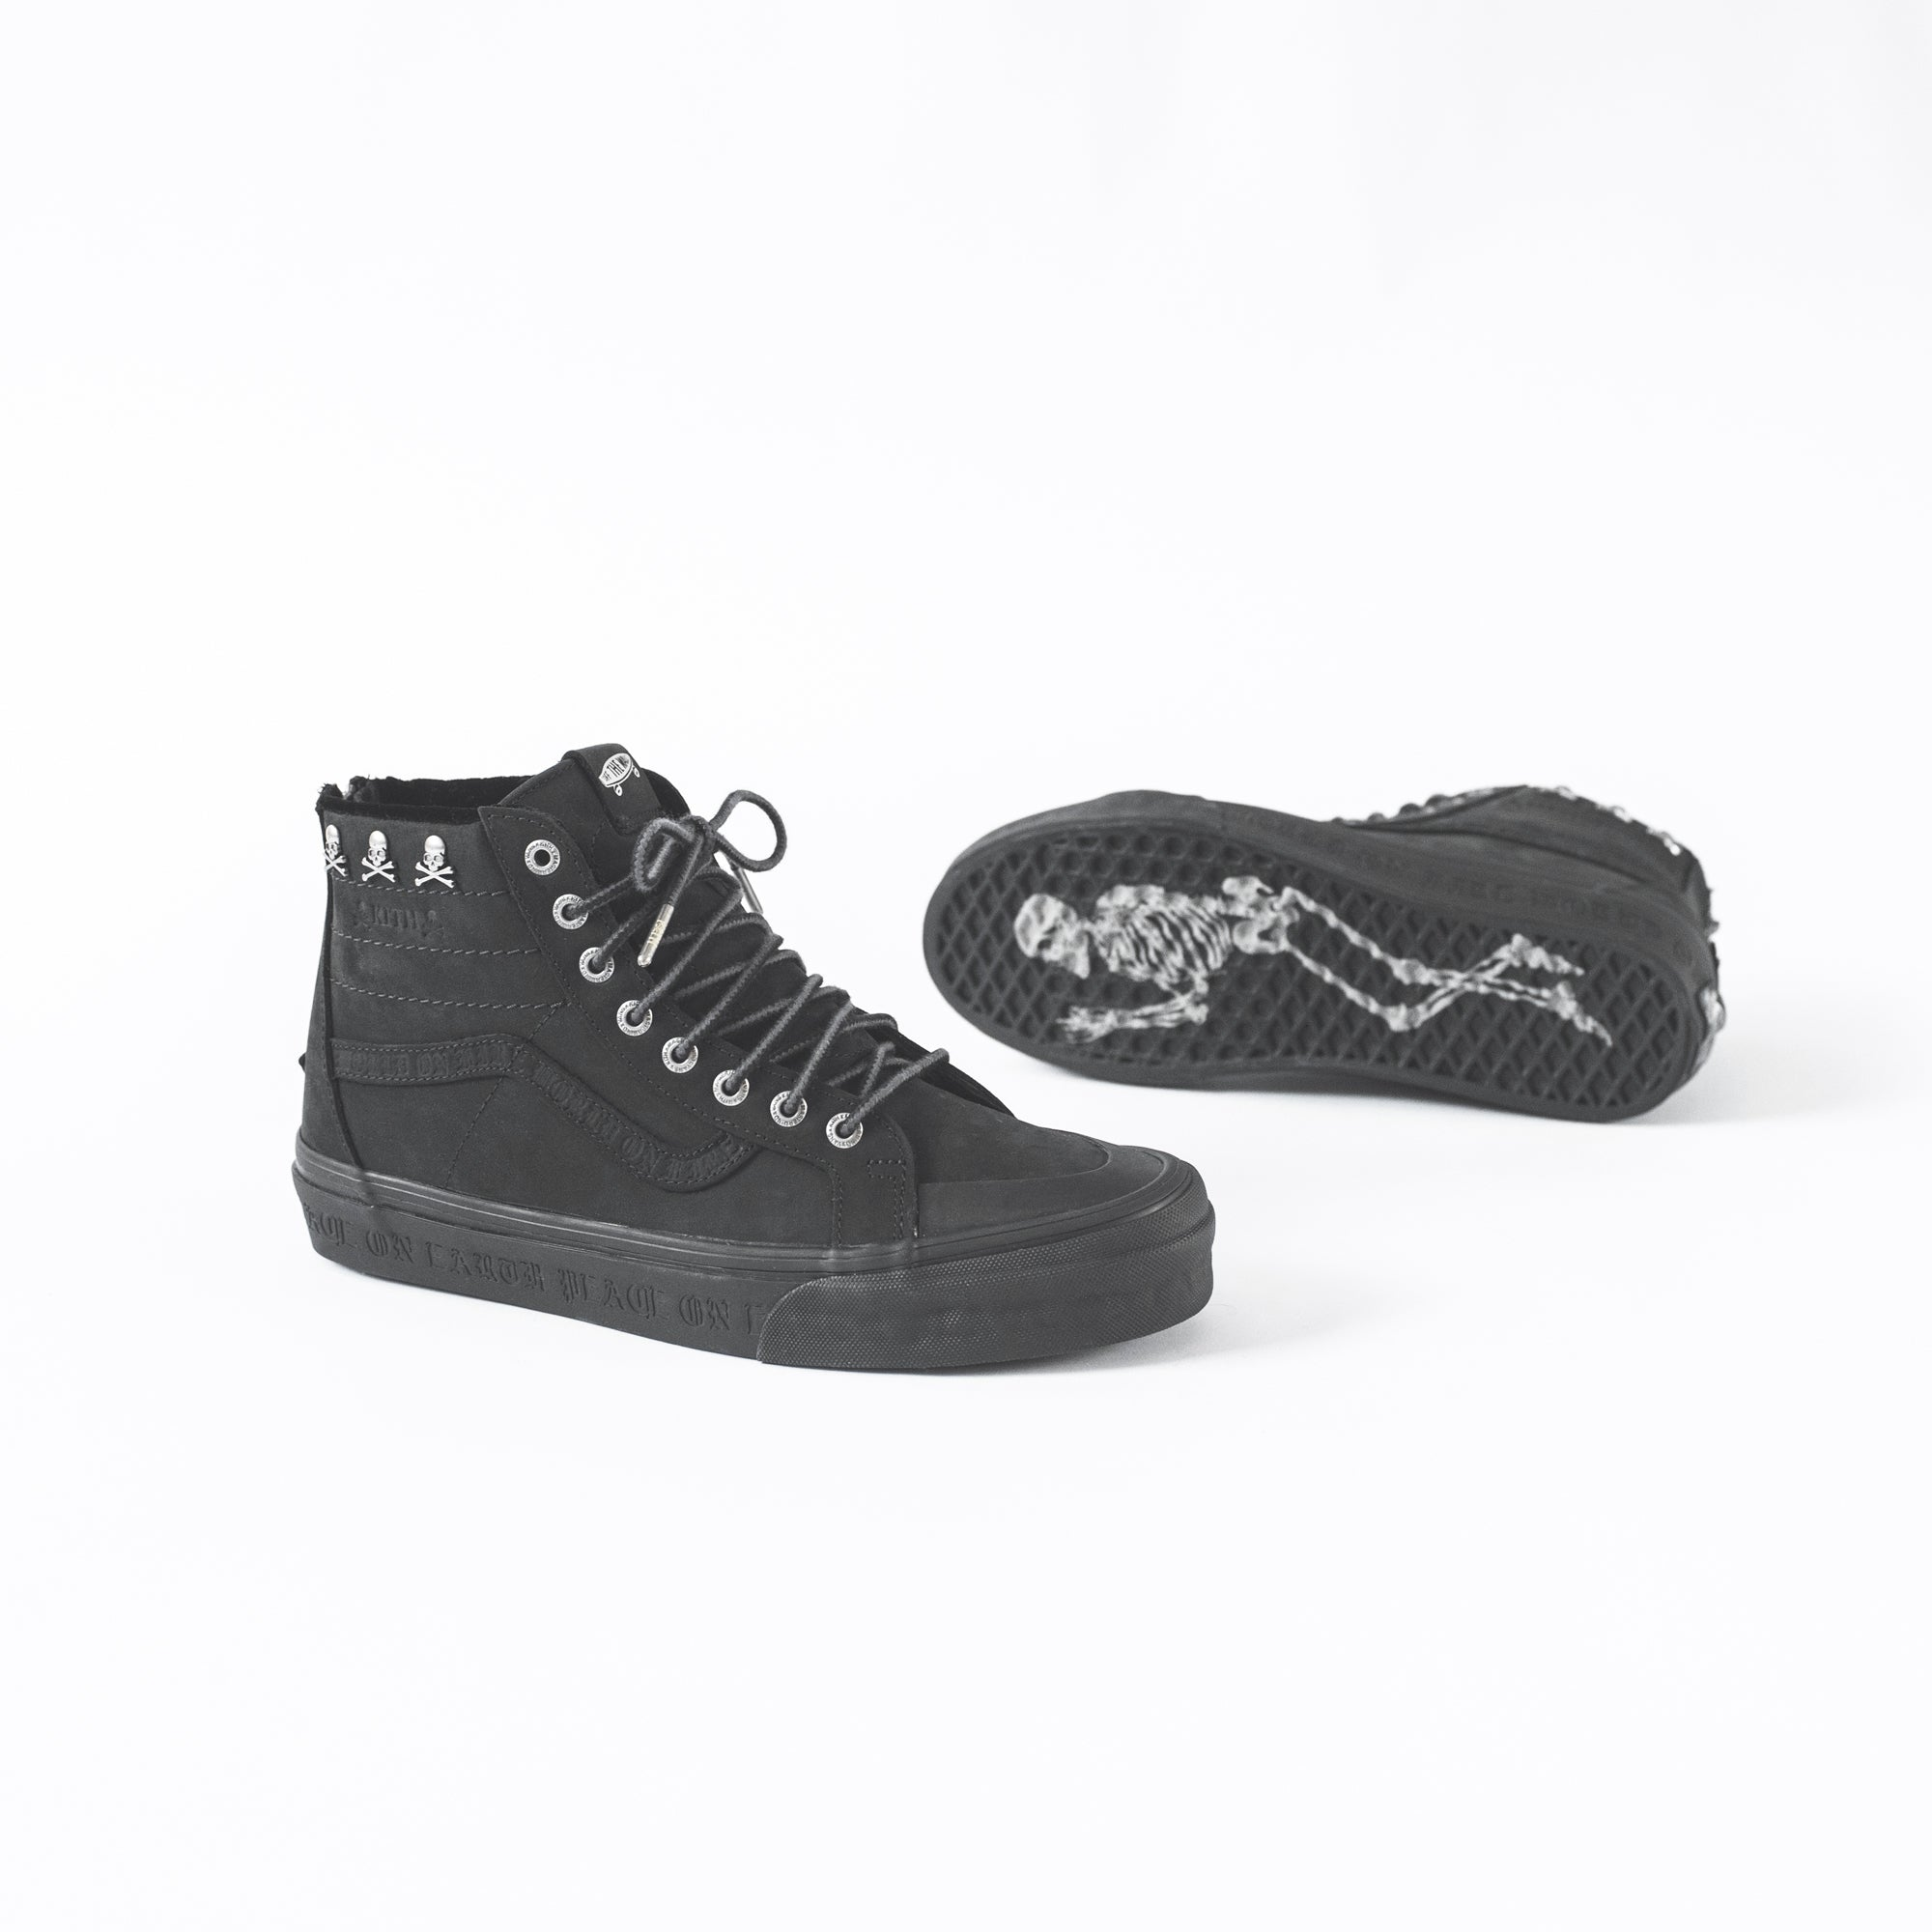 918fdda472 Kith x Mastermind World releases January 18th at all Kith shops and at 11AM  EST on Kith.com.